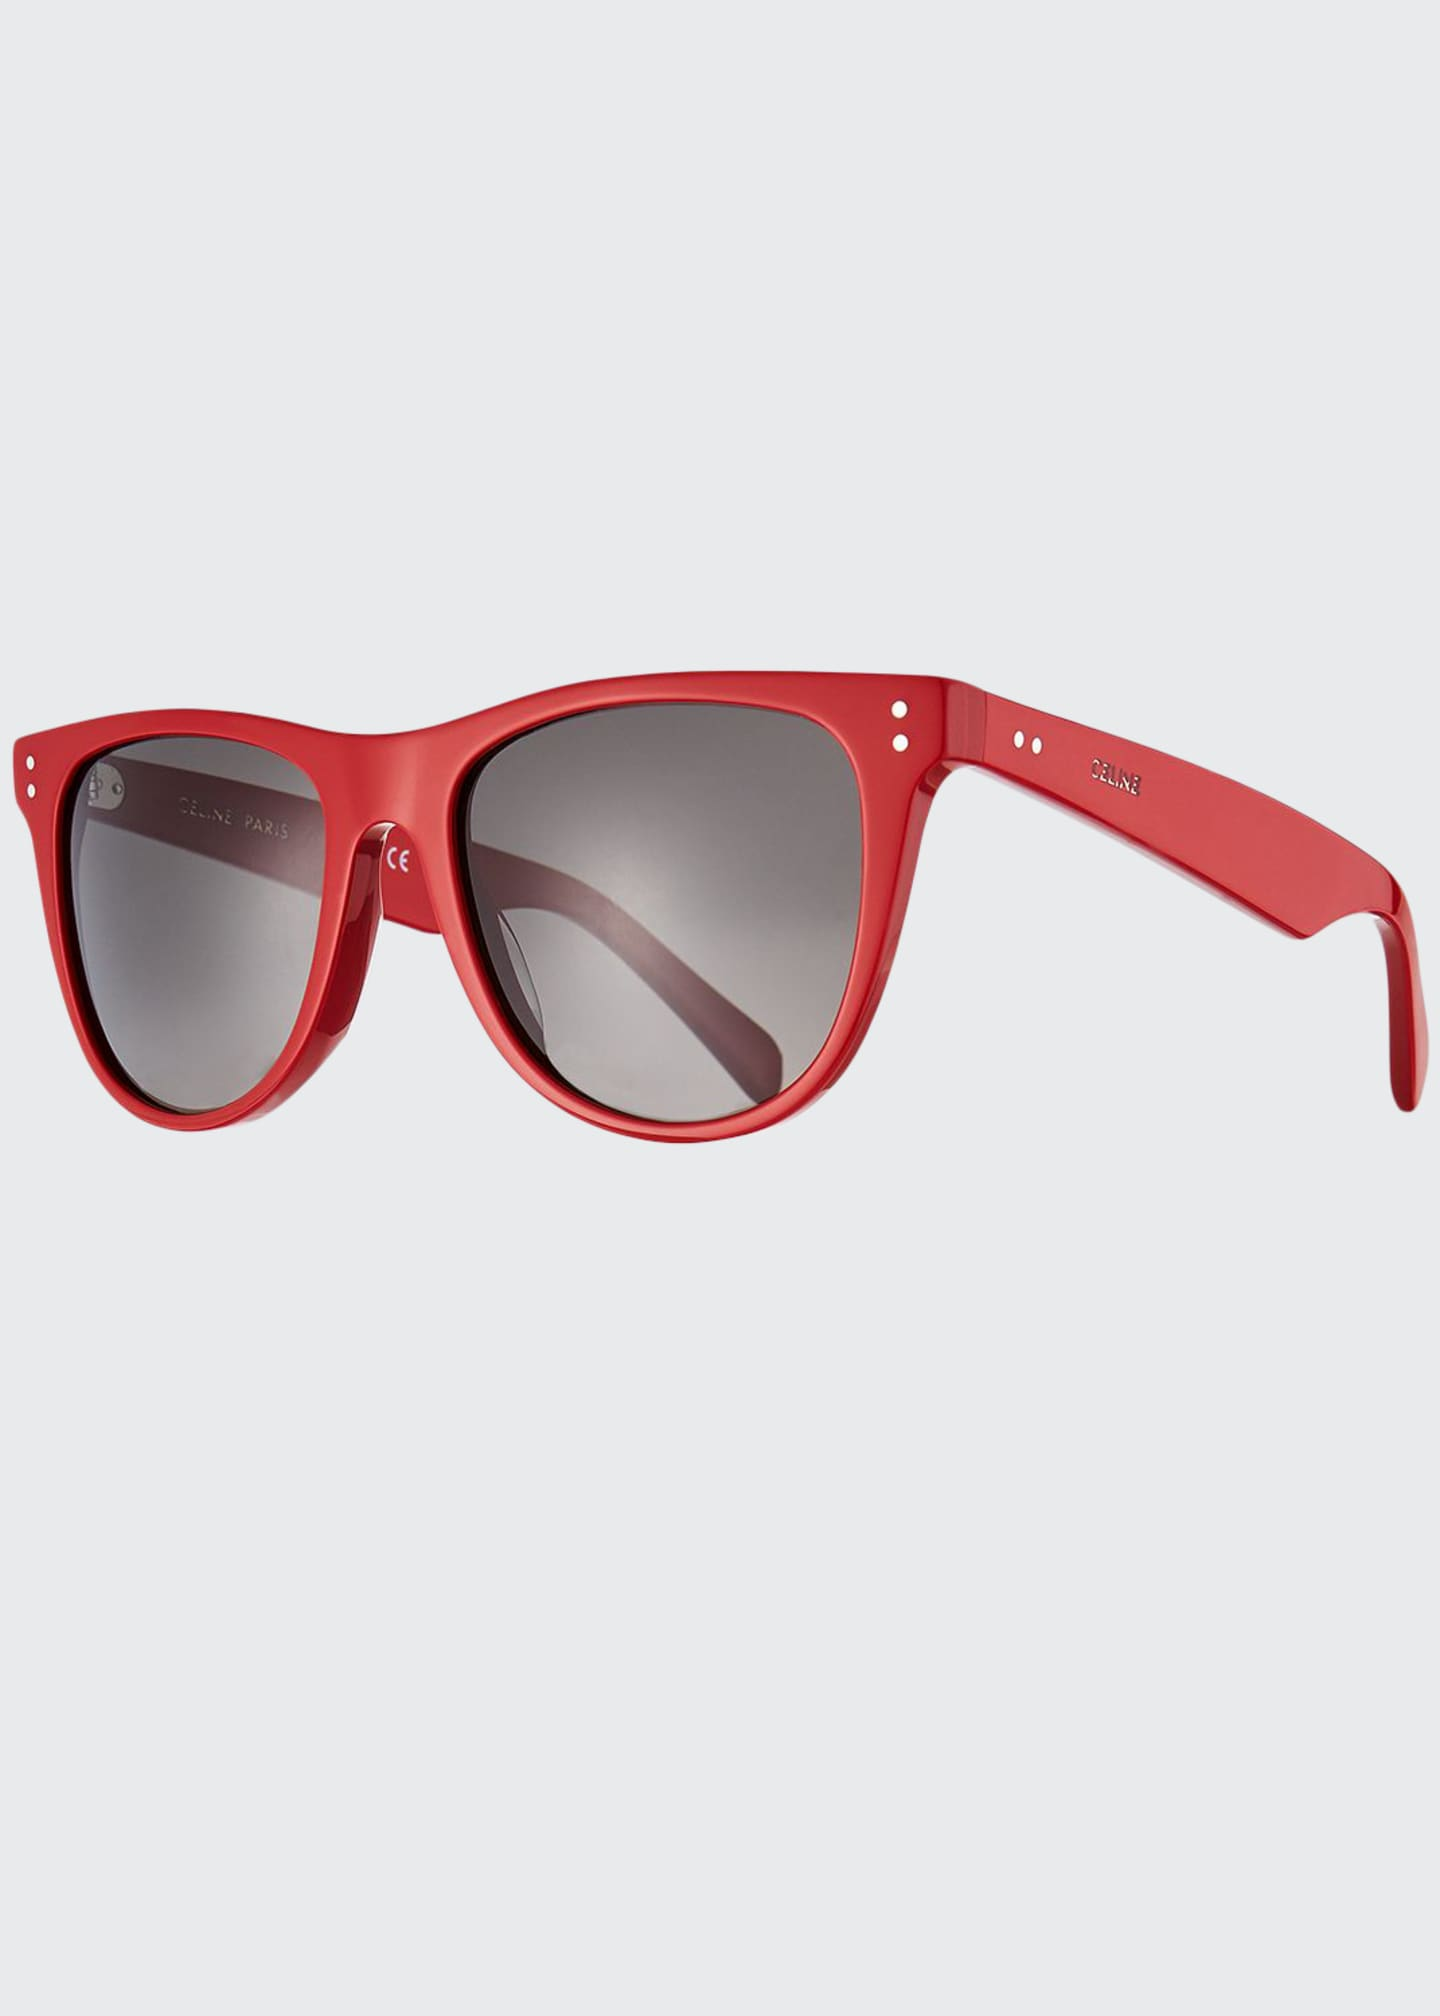 Celine Men's Gradient Acetate Sunglasses